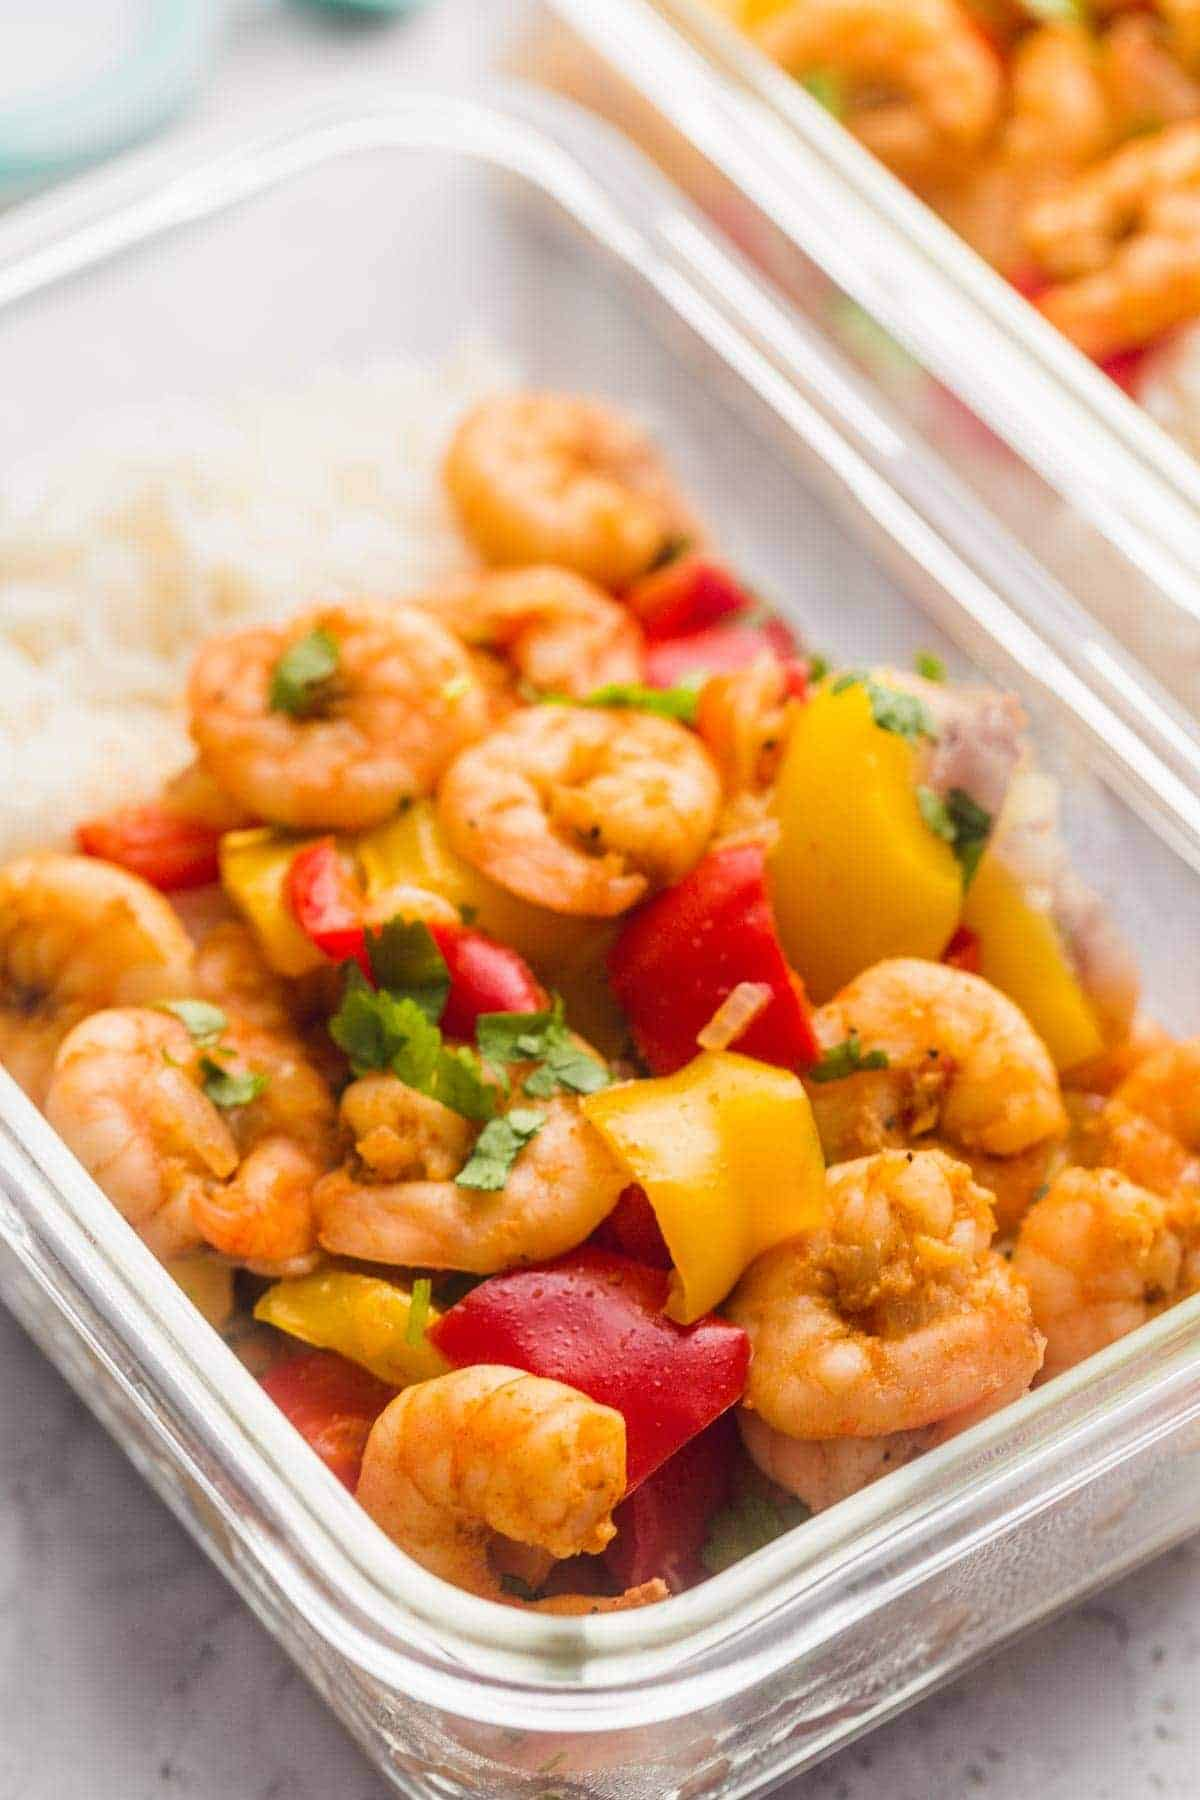 Instant Pot Spicy Cajun Pepper Shrimp in meal prep containers with rice